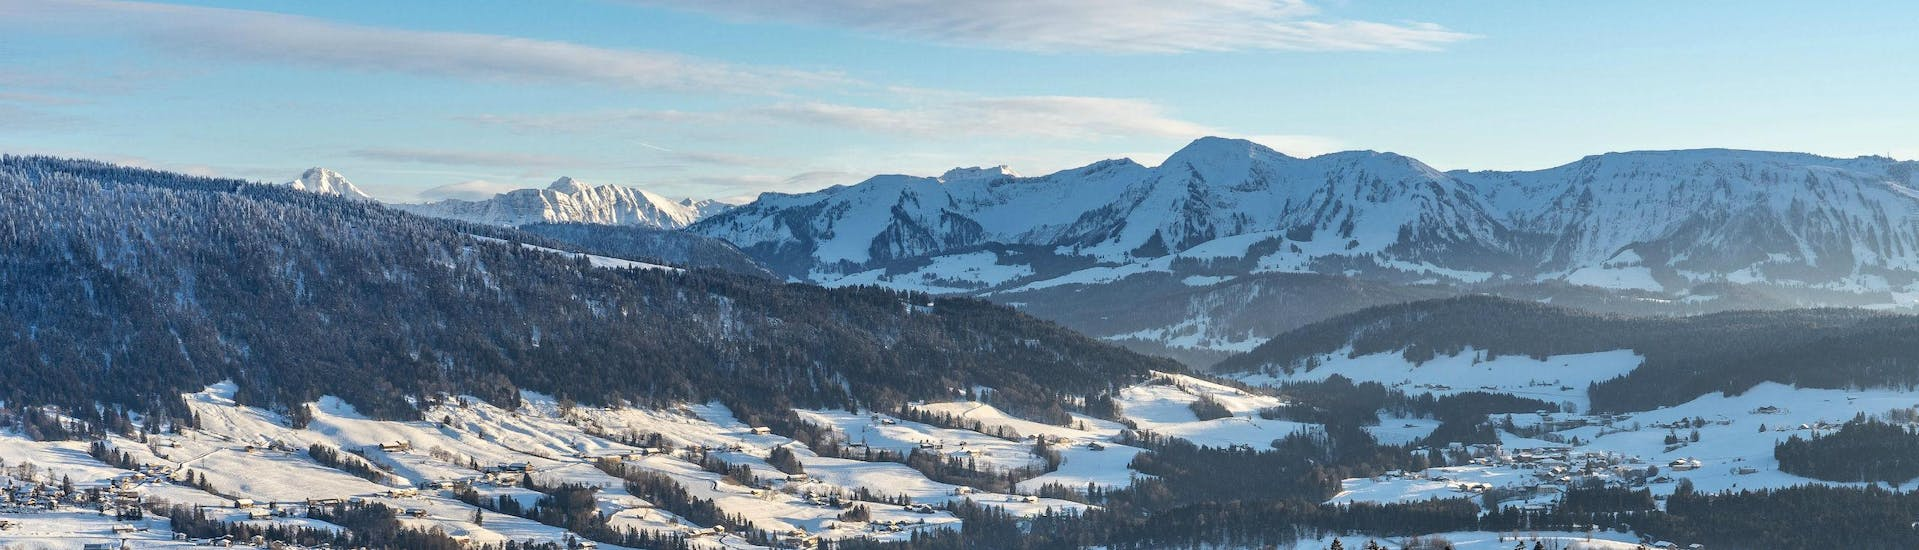 A view of the scenic ski resort of Oberstaufen, where local ski schools offer ski lessons for all experience levels.